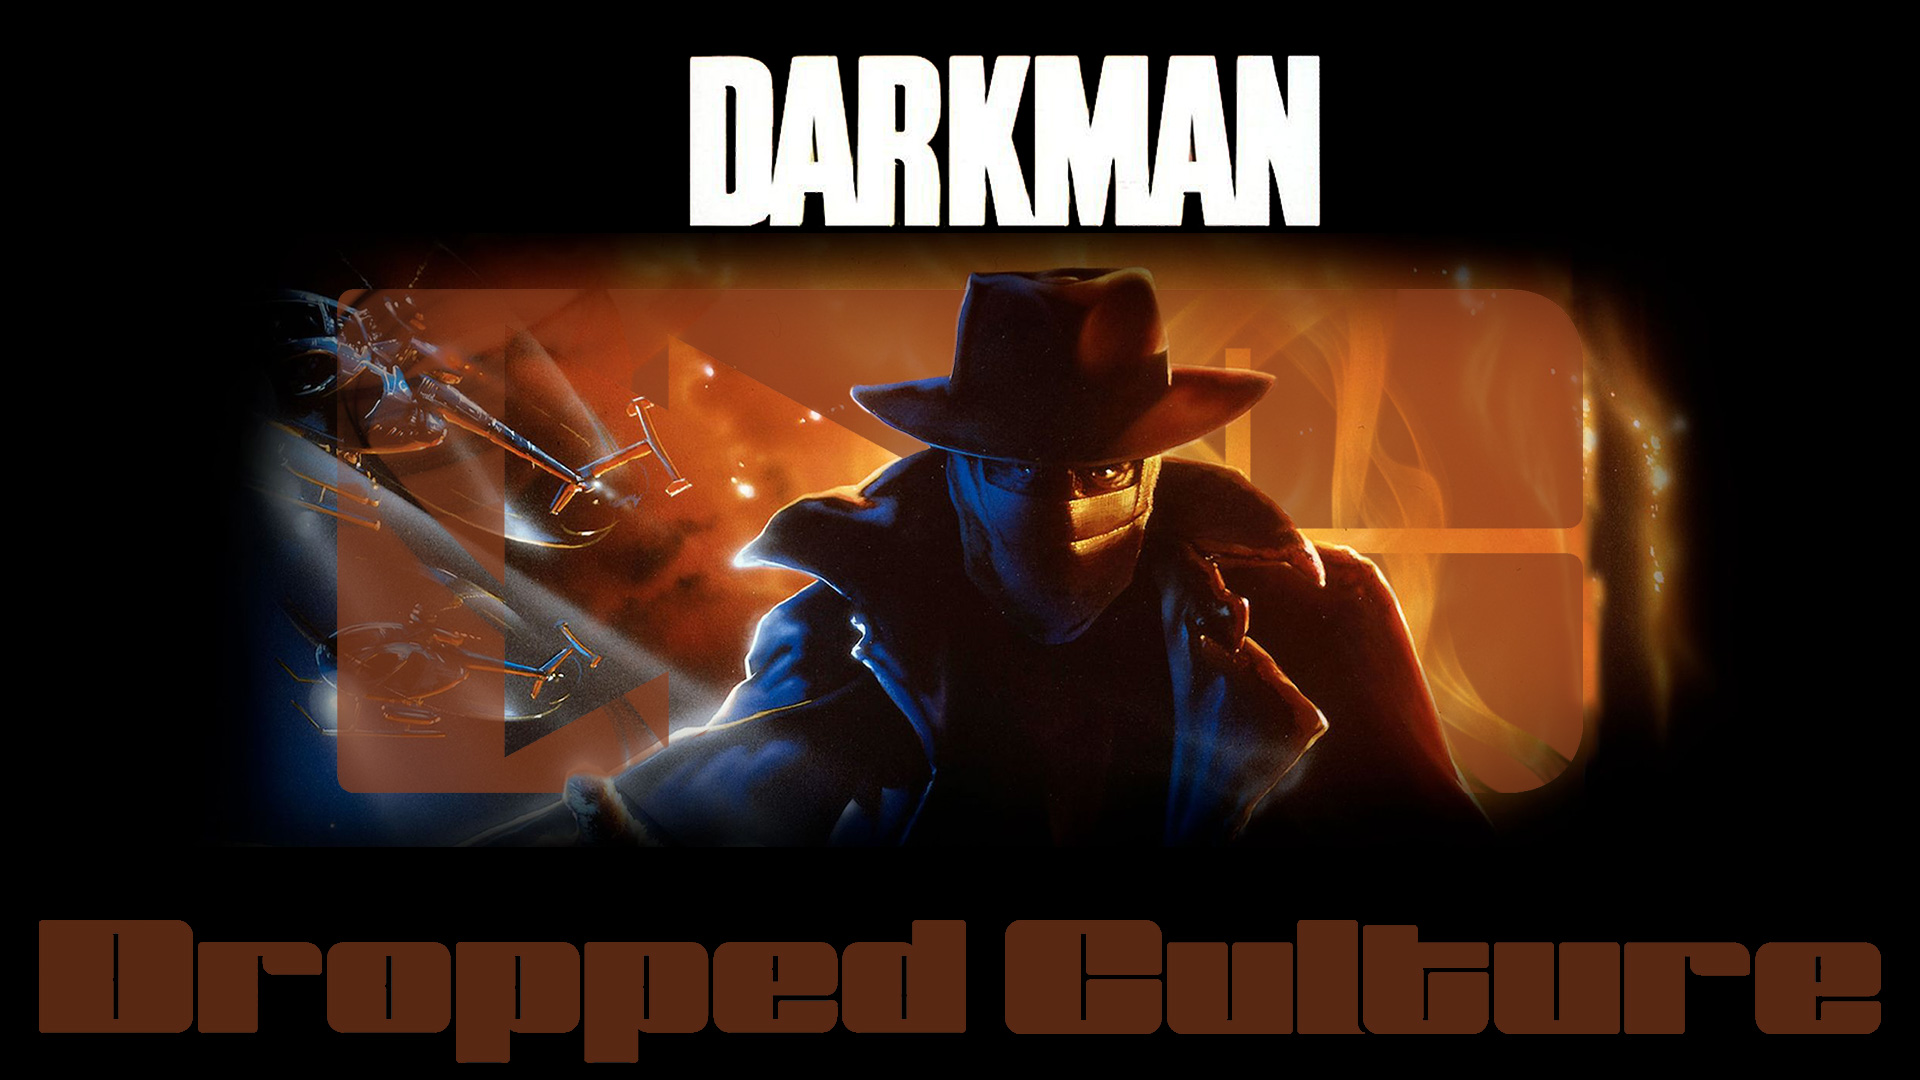 Dropped Culture Darkman Youtube